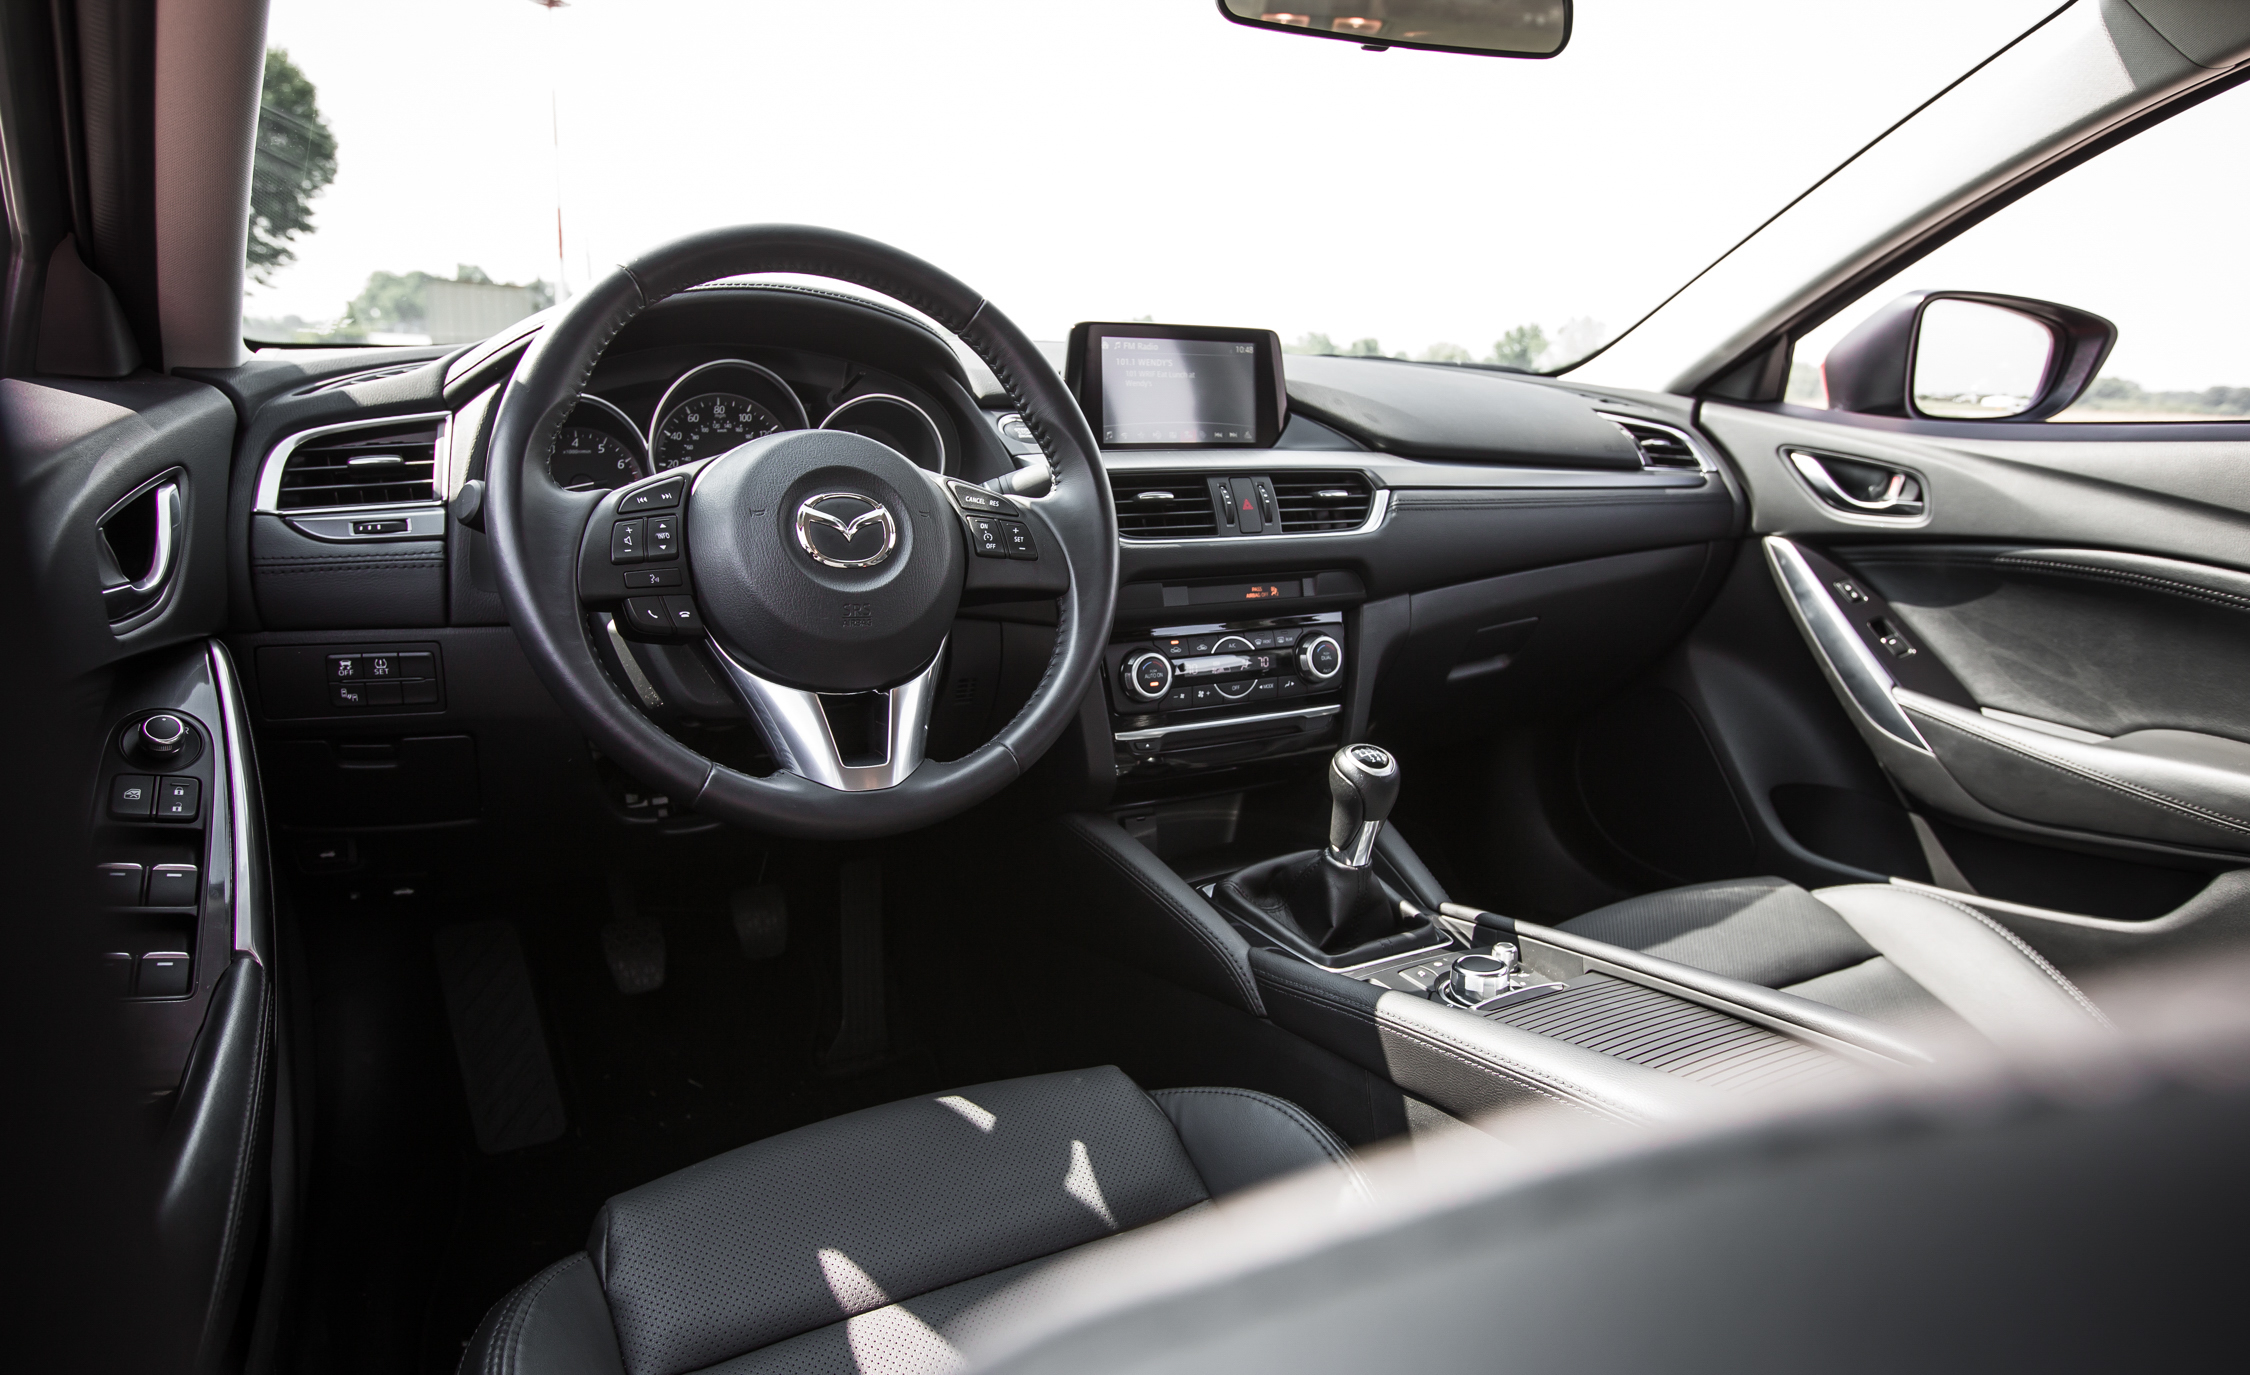 2016 Mazda 6 Touring Interior Cockpit